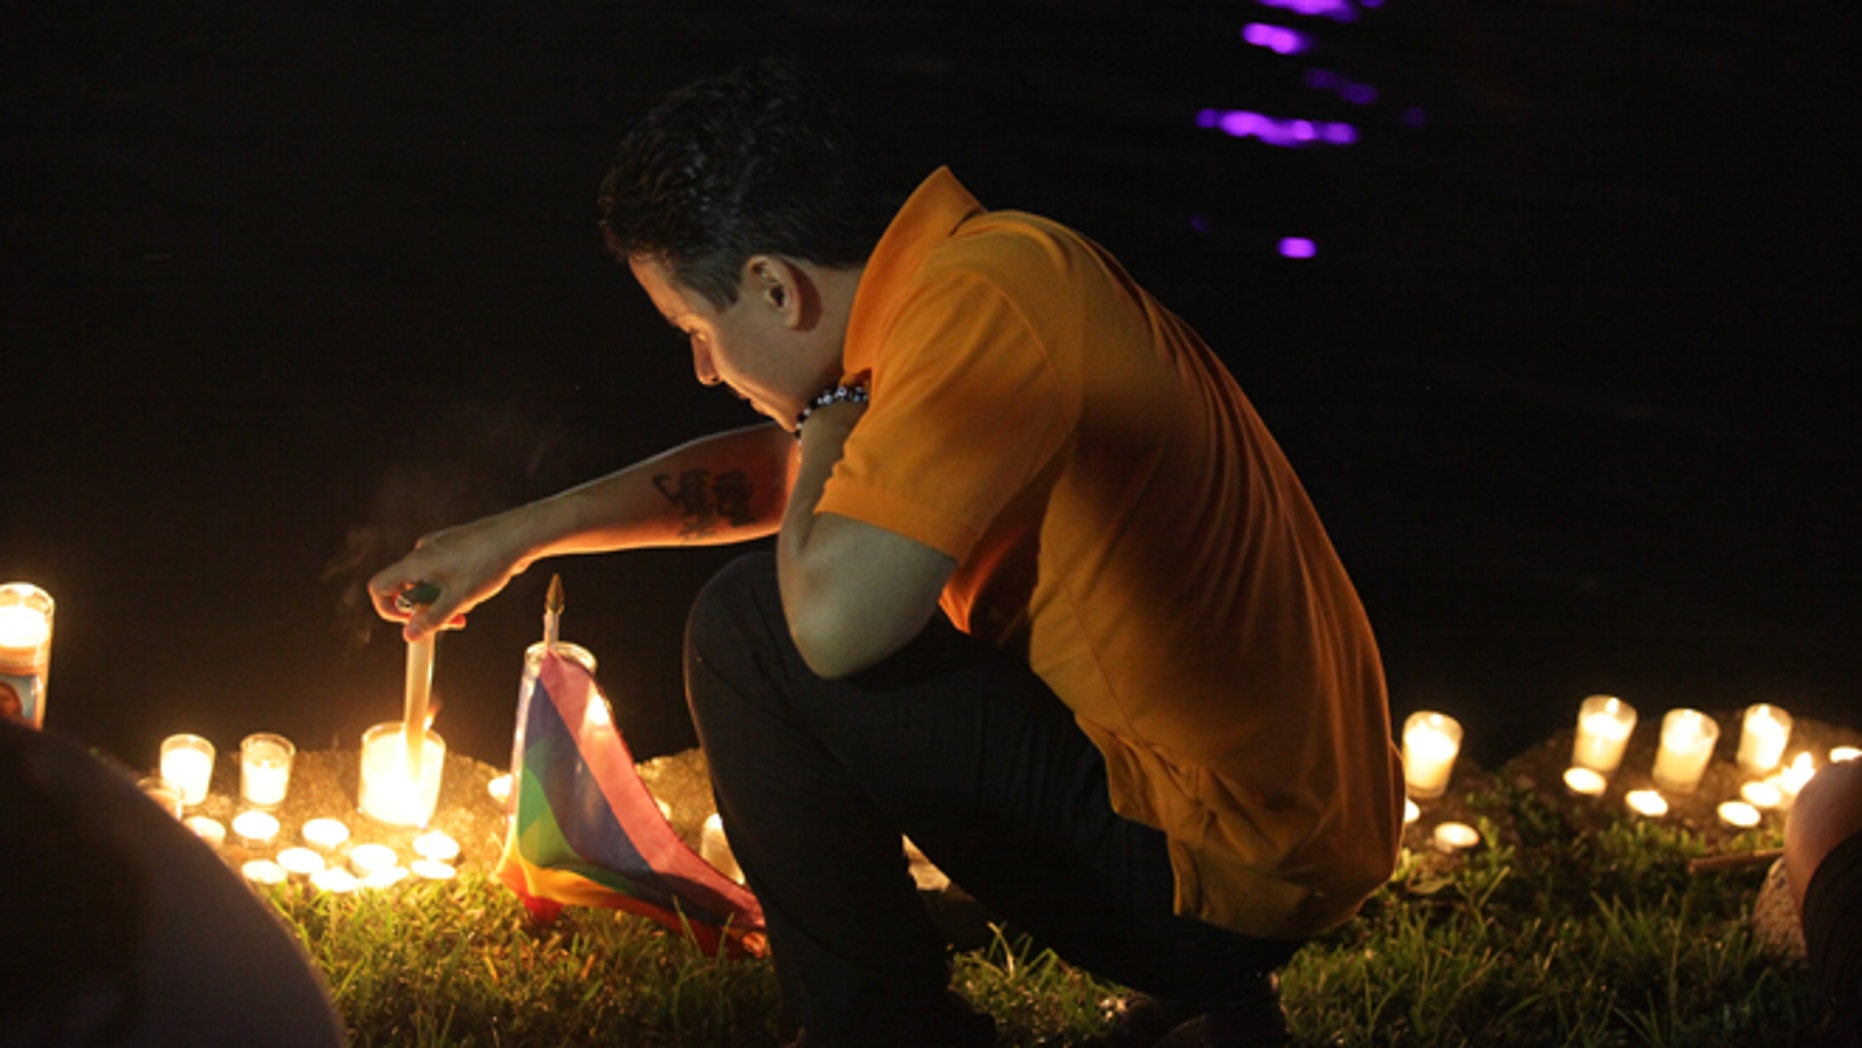 A mourner in Lake Eola Park lights a candle in memorium of the Pulse nightclub shooting victims.